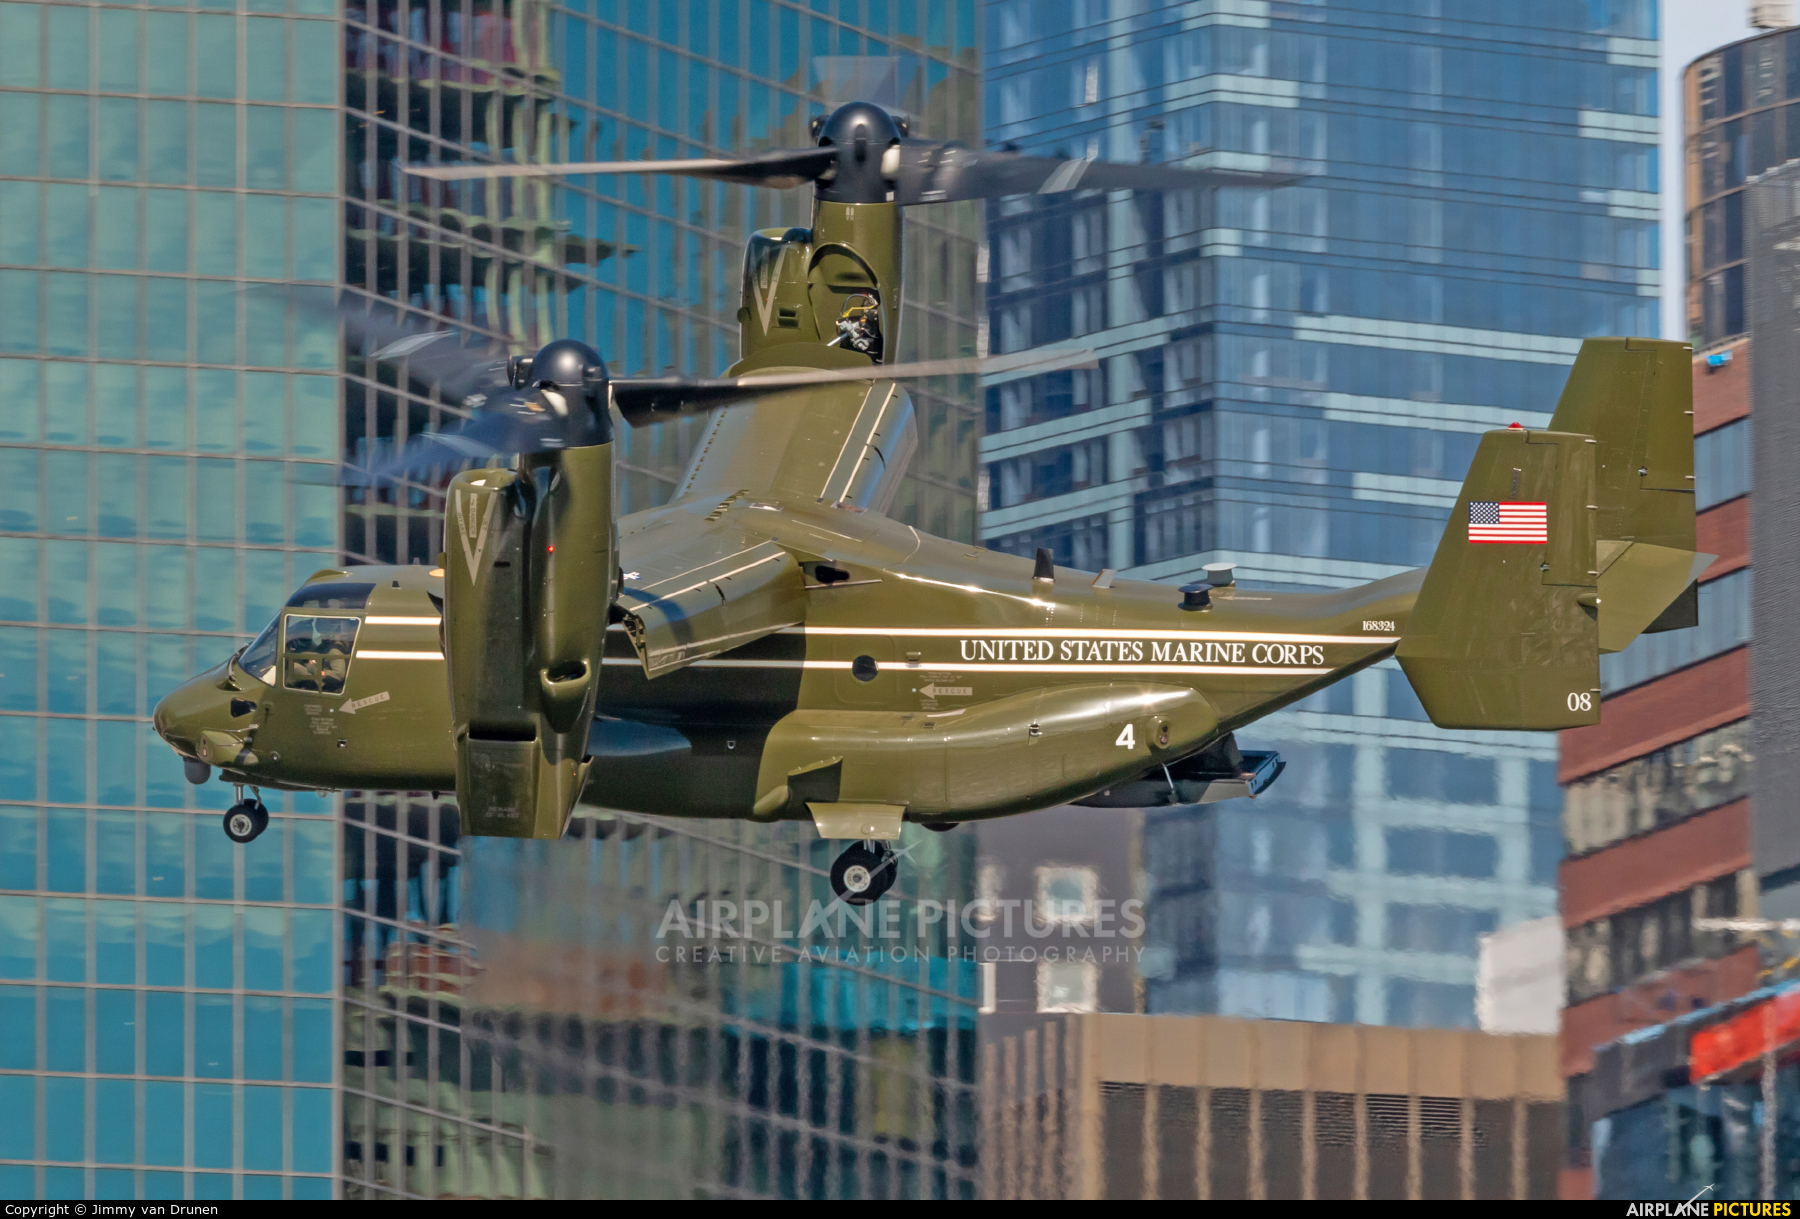 USA - Marine Corps 168324 aircraft at New York - Port Authority Downtown Manhattan / Wall Street Heliport